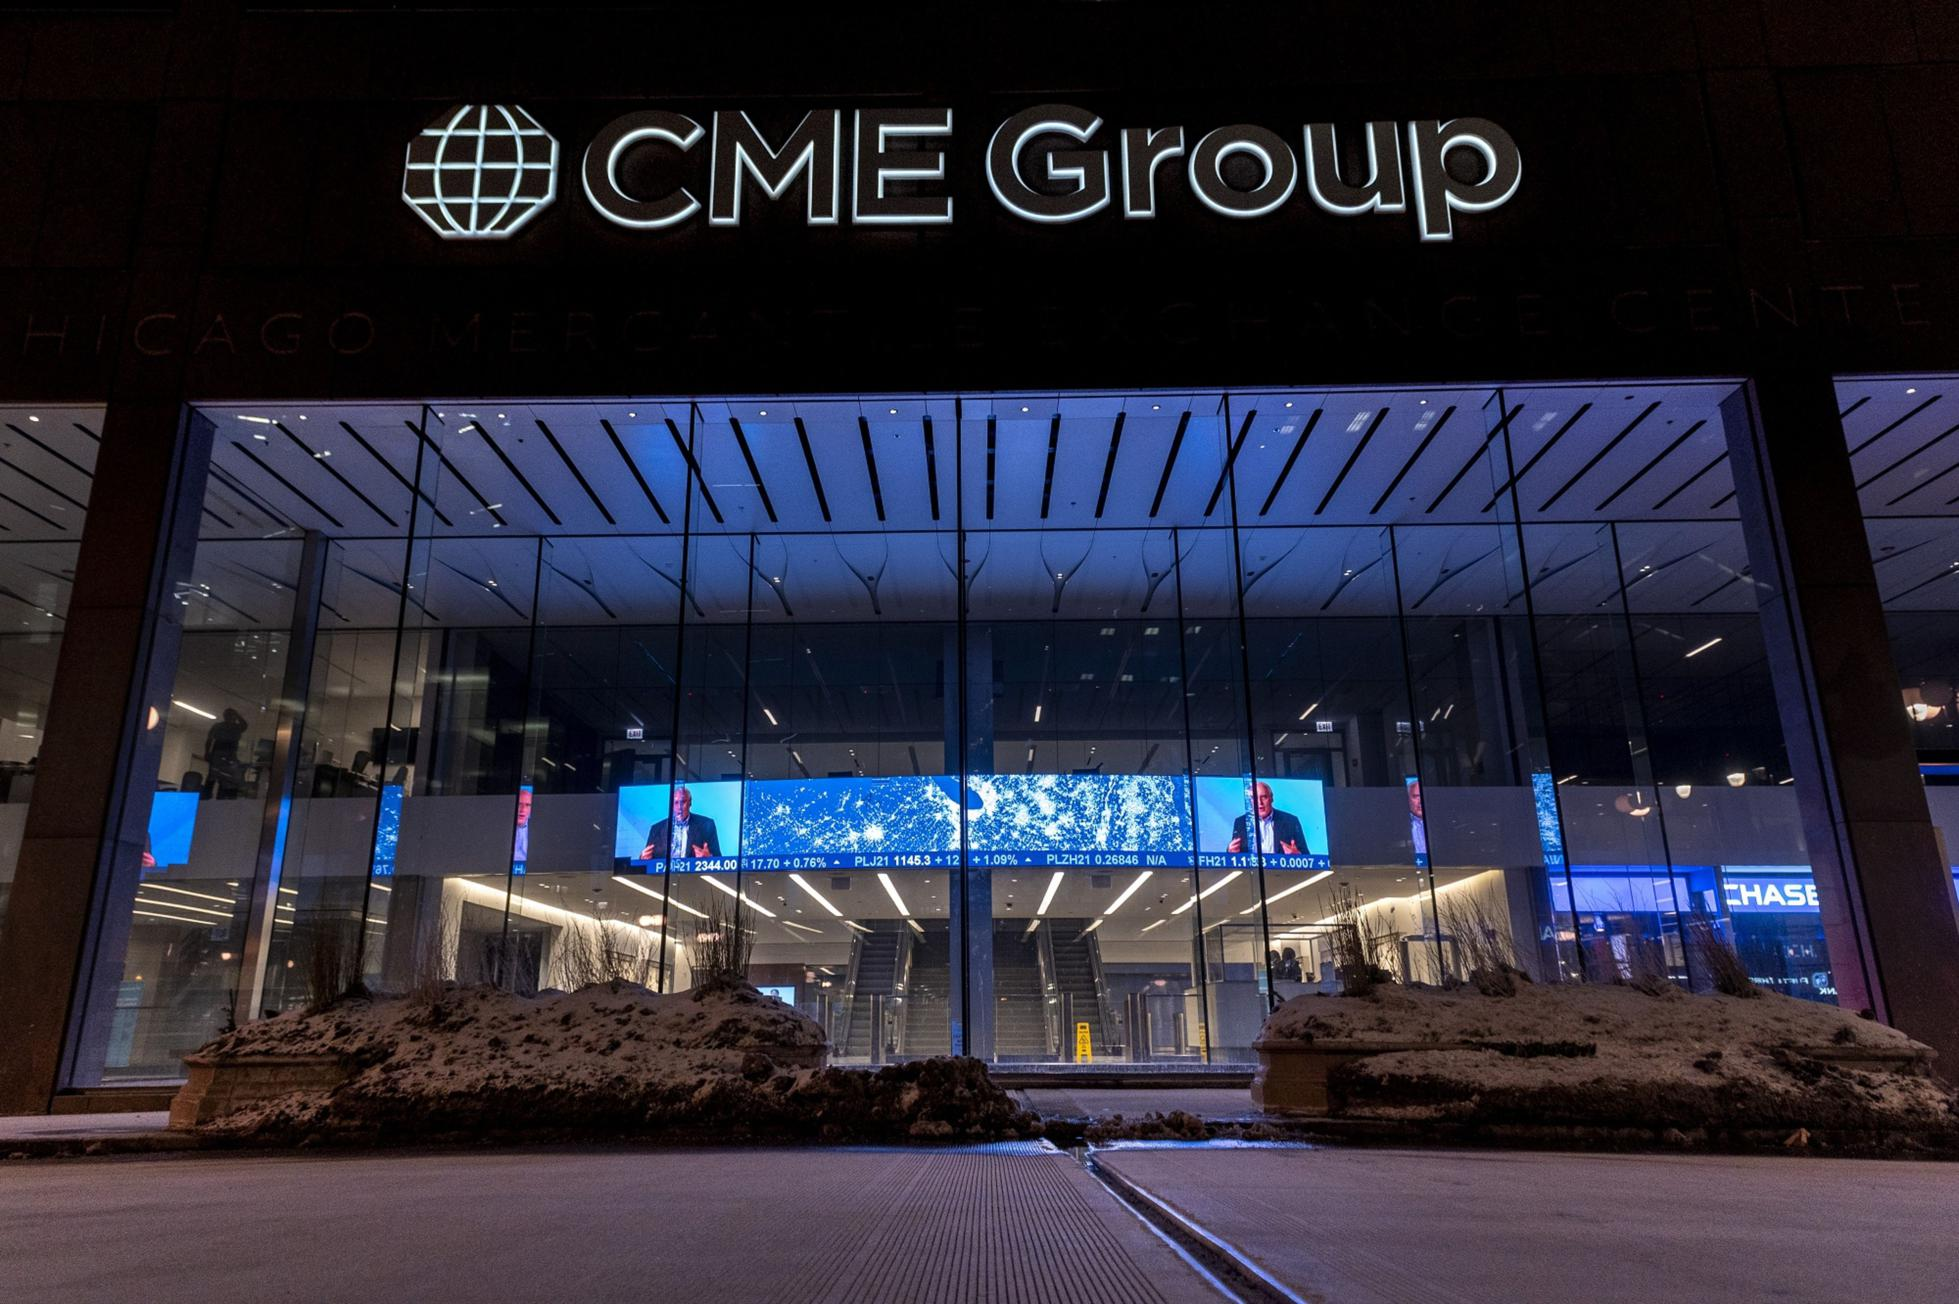 CME Group Headquarters Ahead Of Earnings Figures